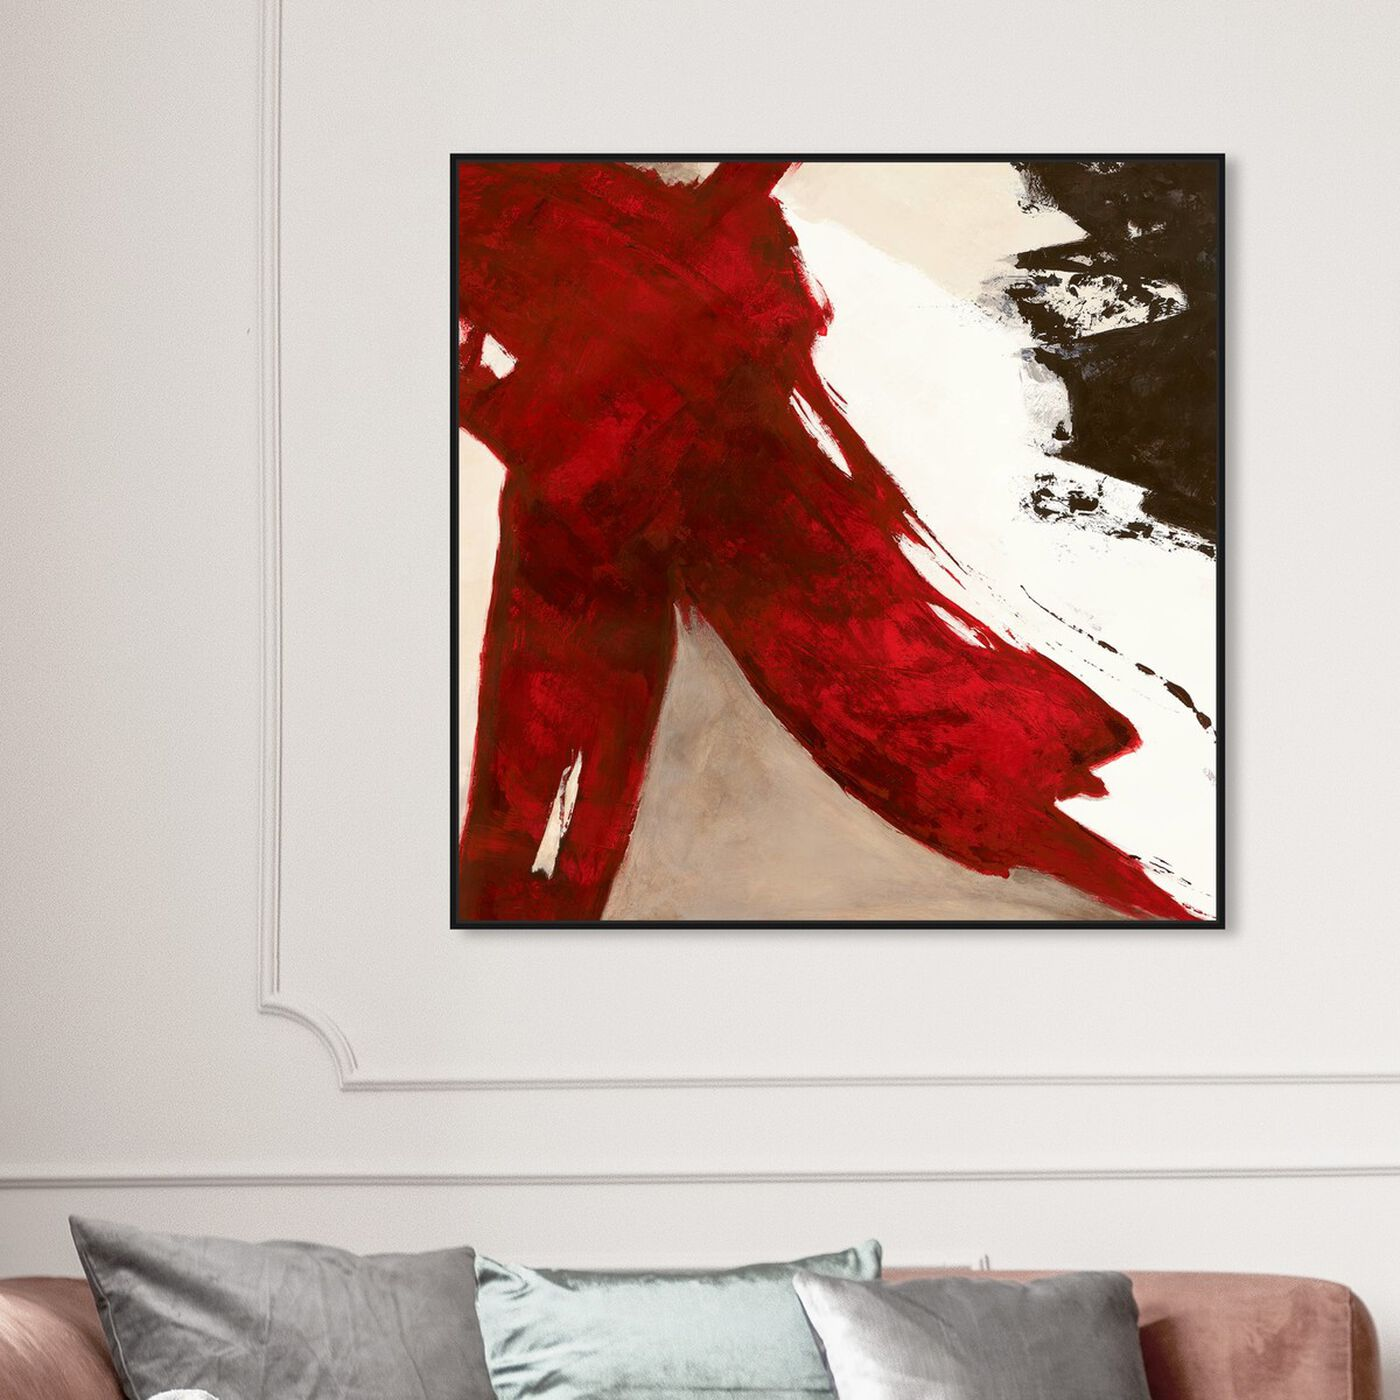 Hanging view of Sai - Rubrum V 1SN1860 featuring abstract and paint art.